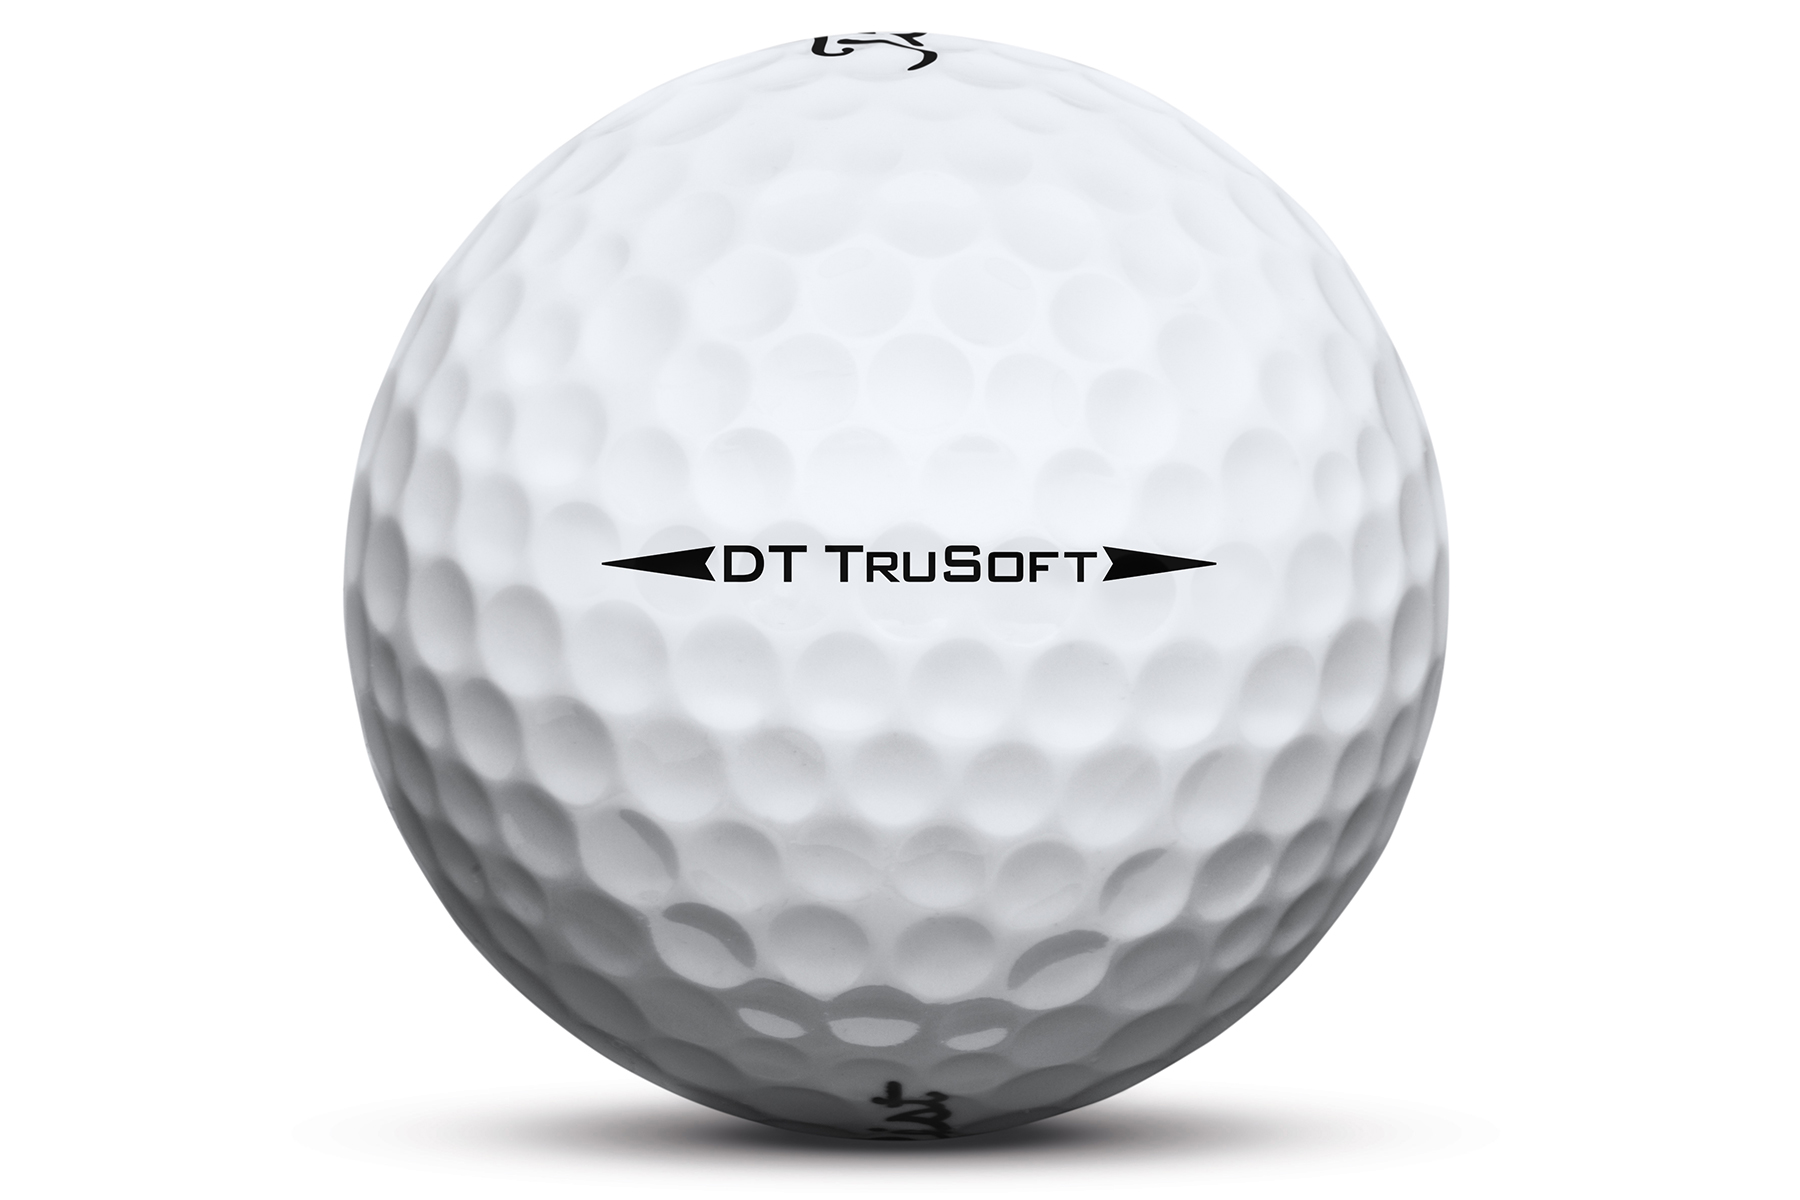 Titleist dt trusoft ball pack from american golf